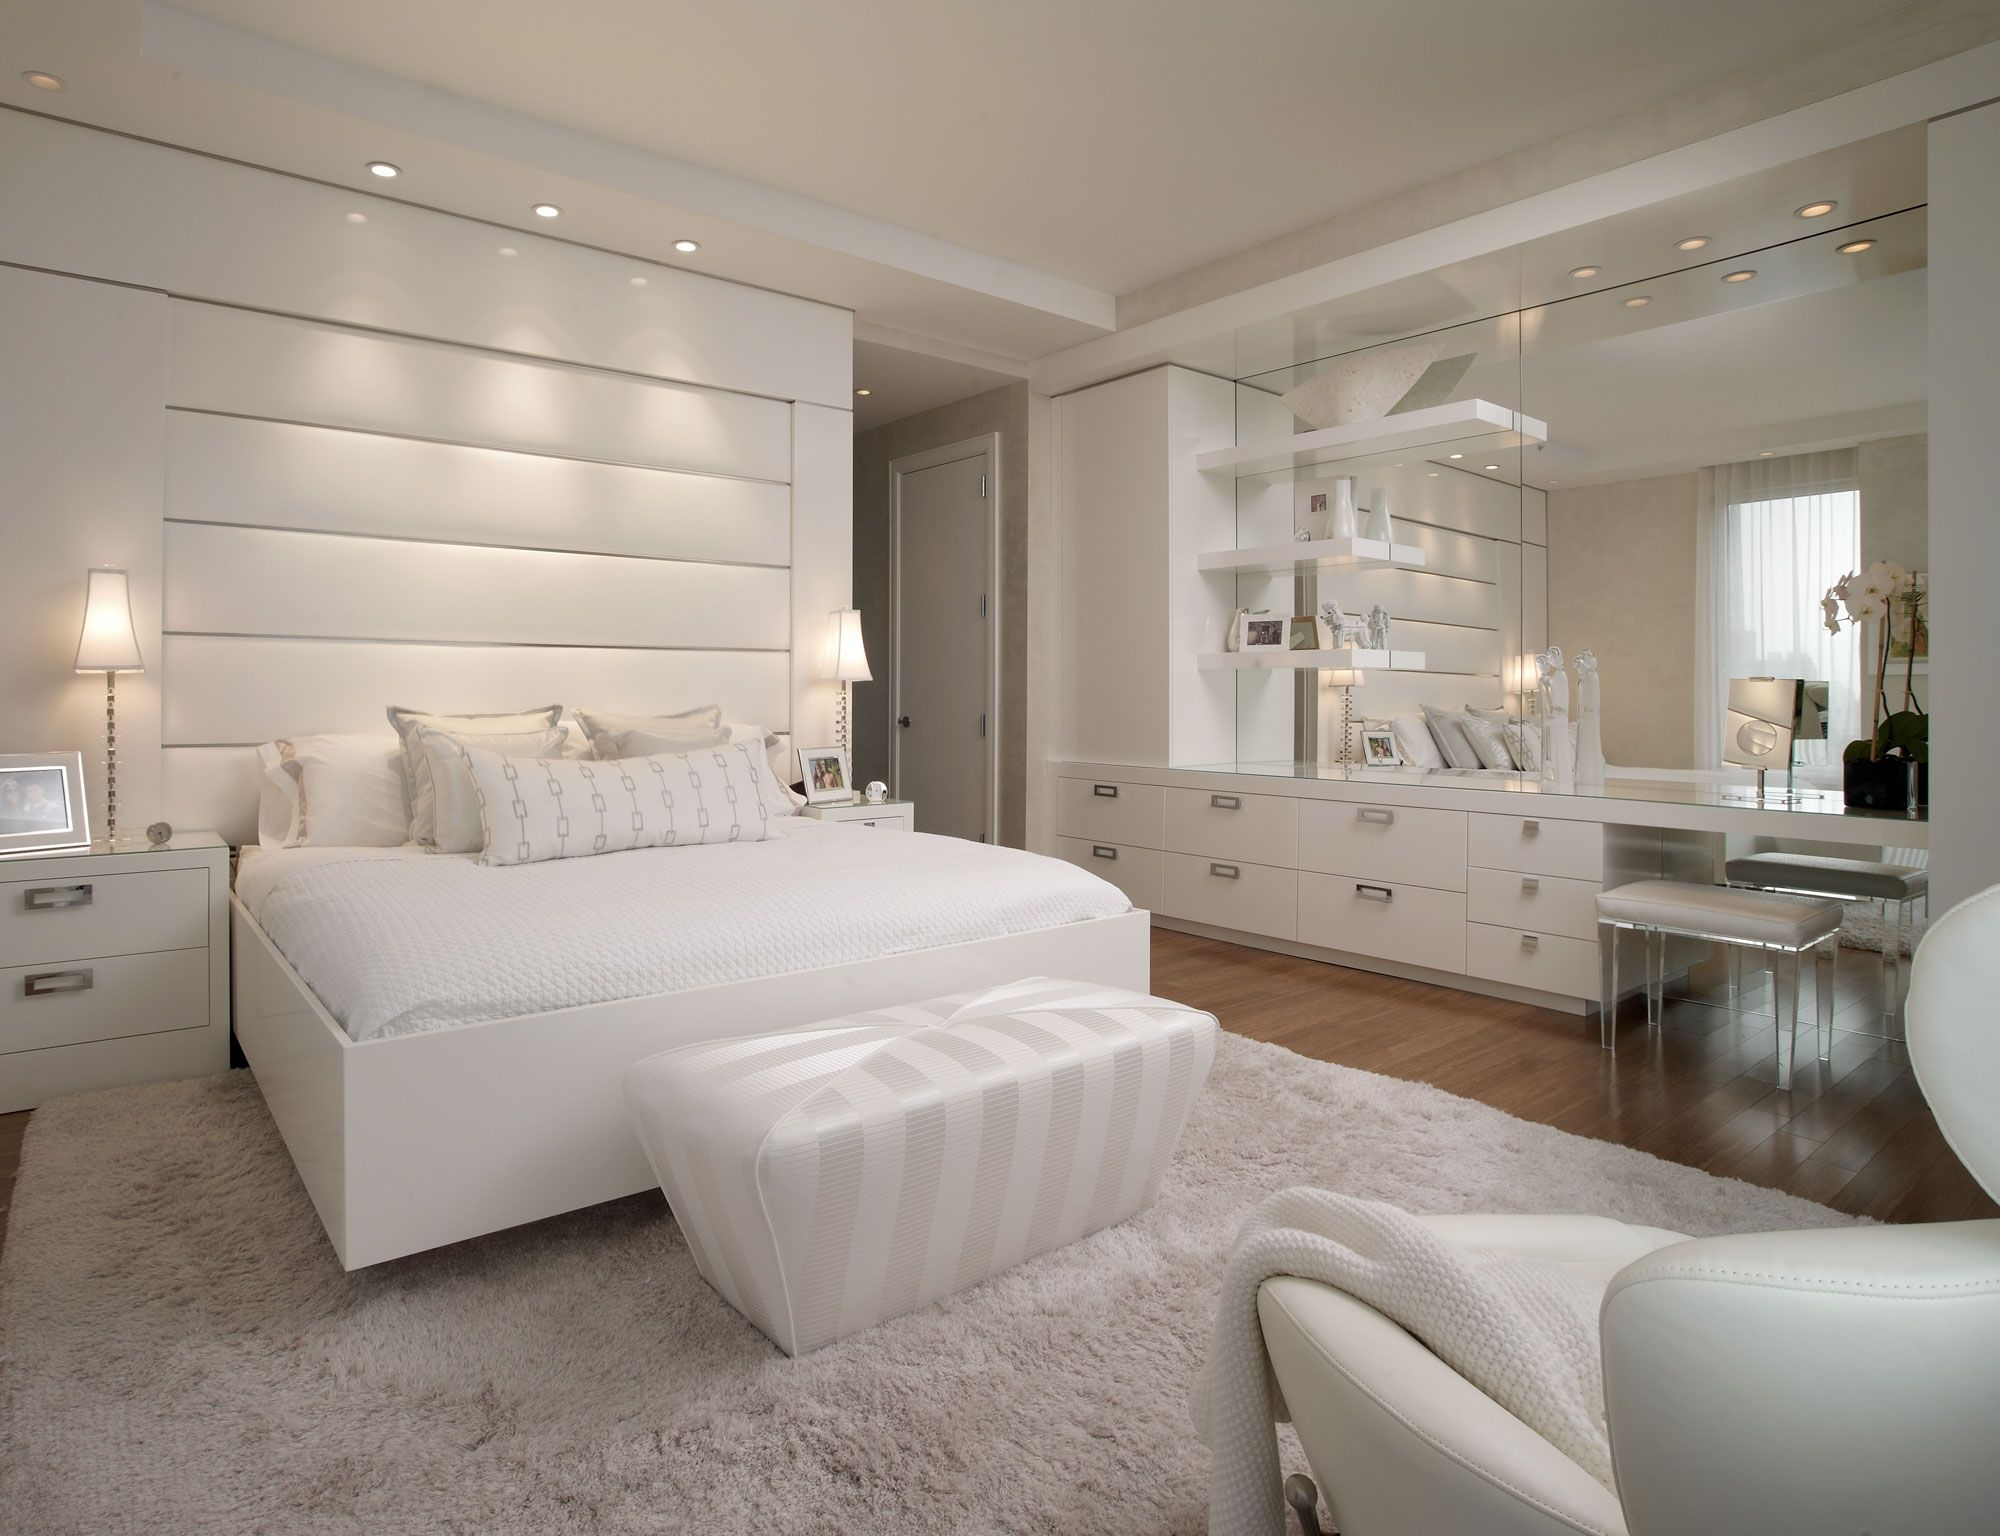 Luxury all white bedroom decorating ideas amazing for Bedroom ideas master